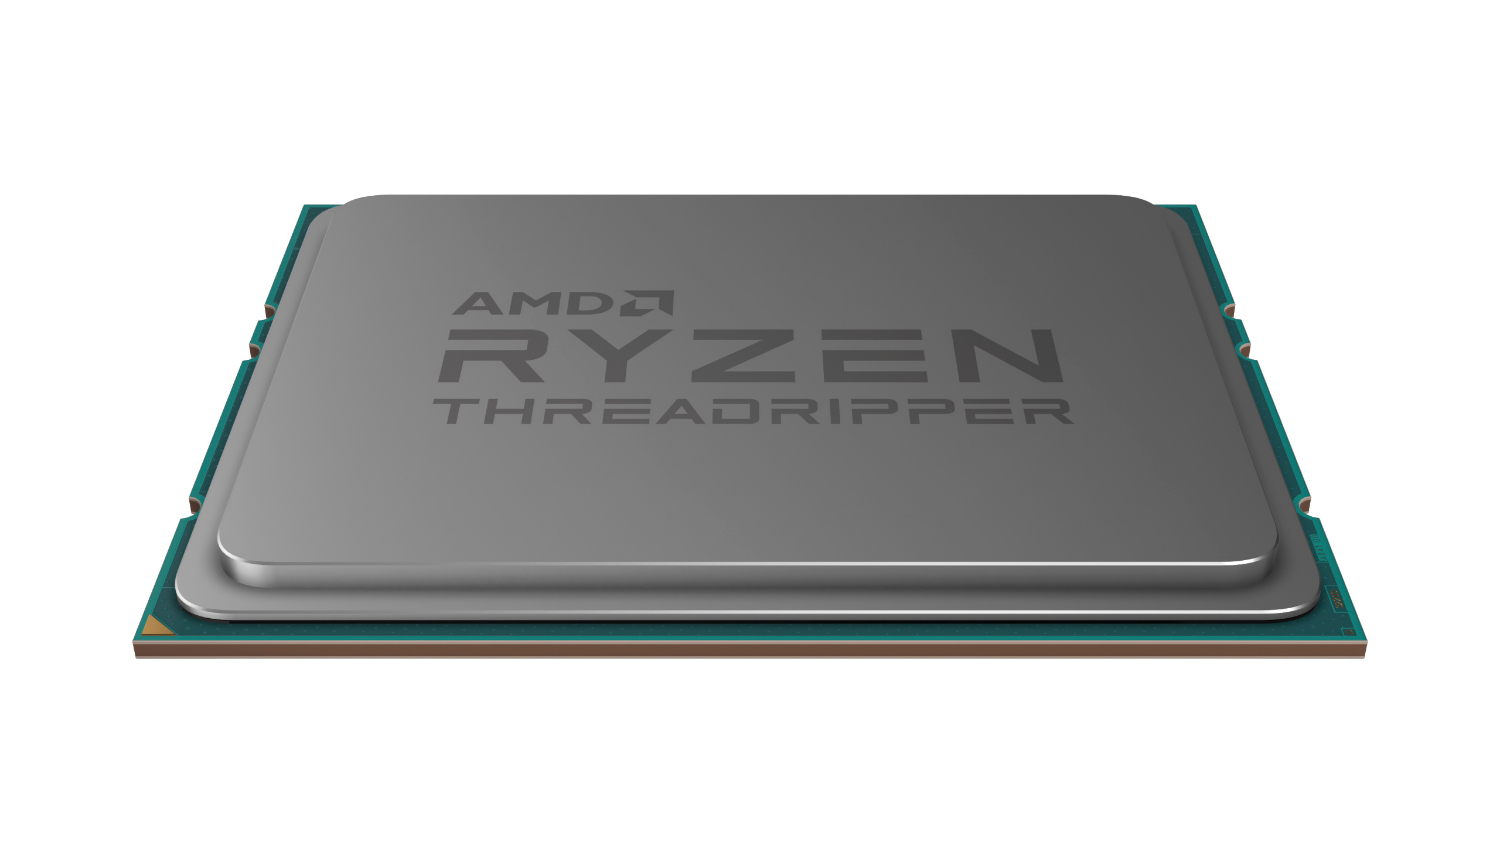 Image 2 : Le Threadripper Sharkstooth à 32 cœurs refait surface sur GeekBench 4 !